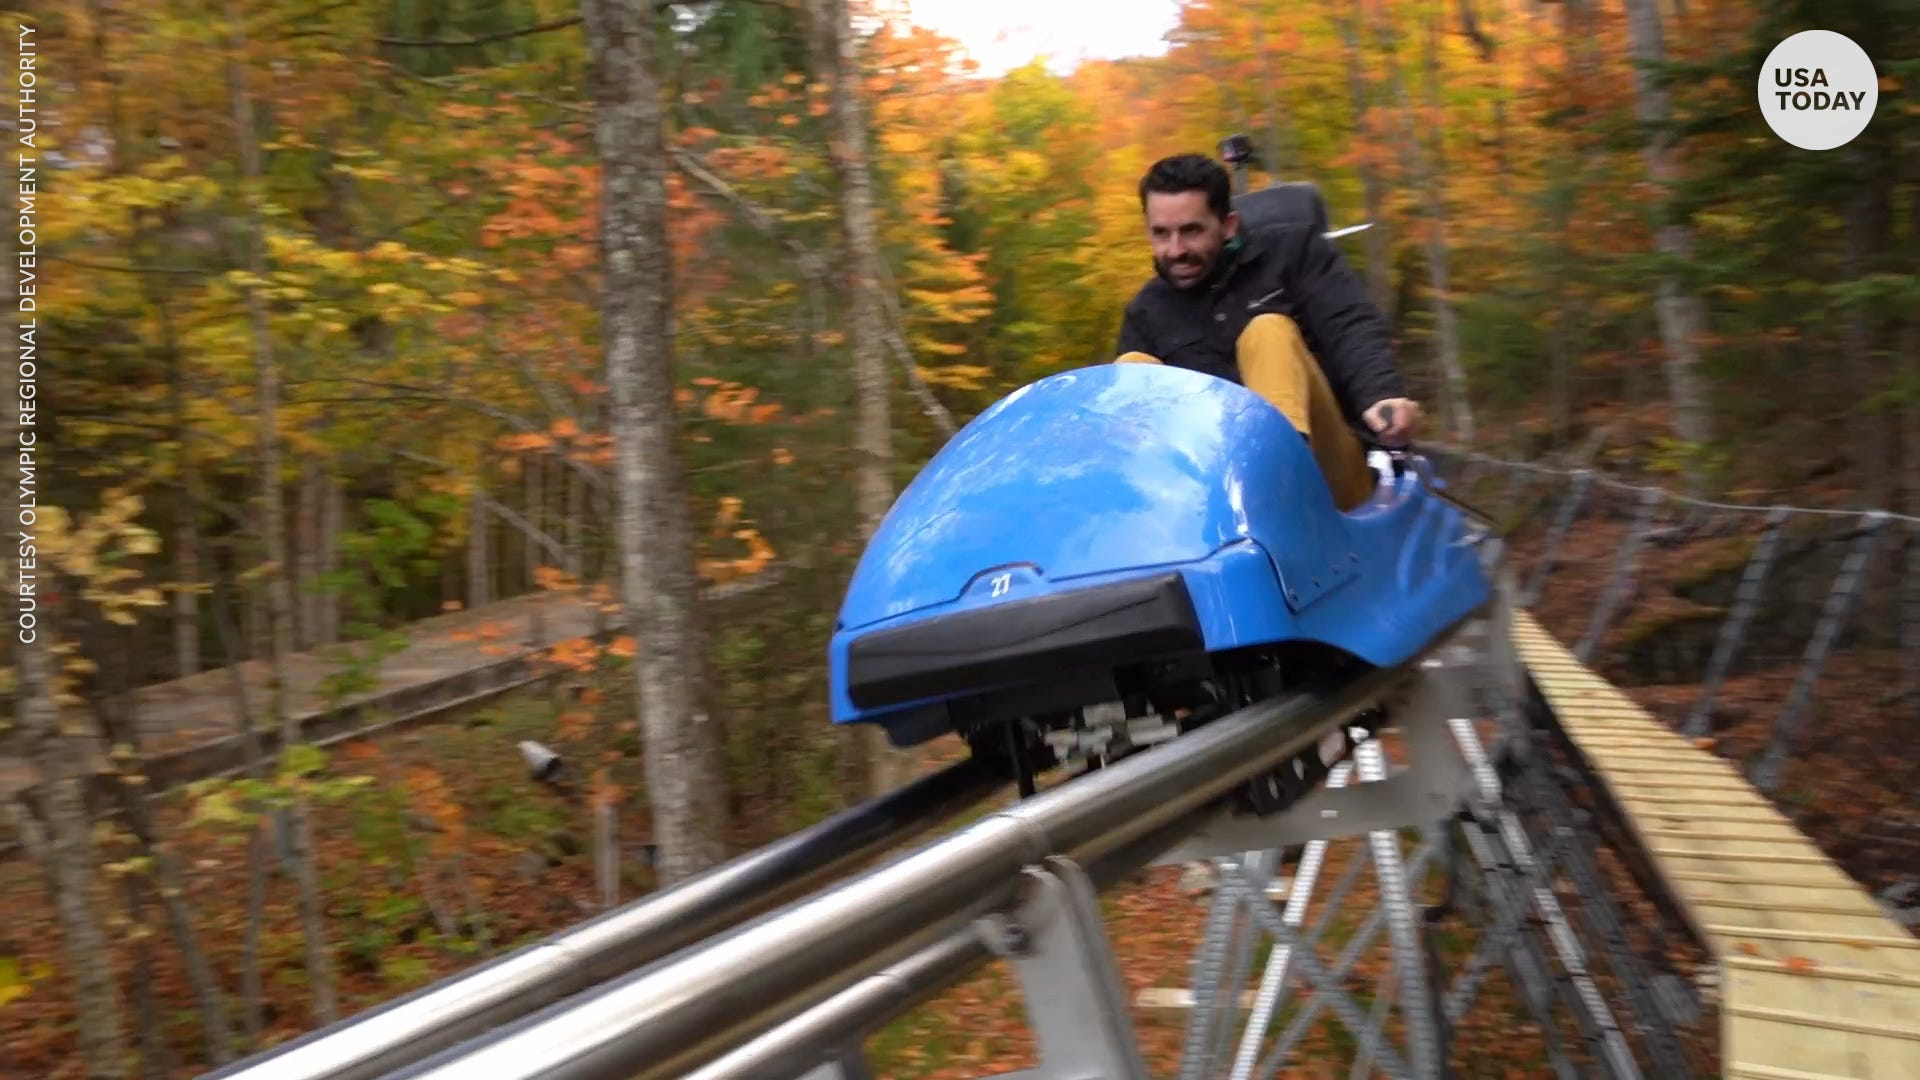 New York just opened the longest mountain coaster in the US in Lake Placid